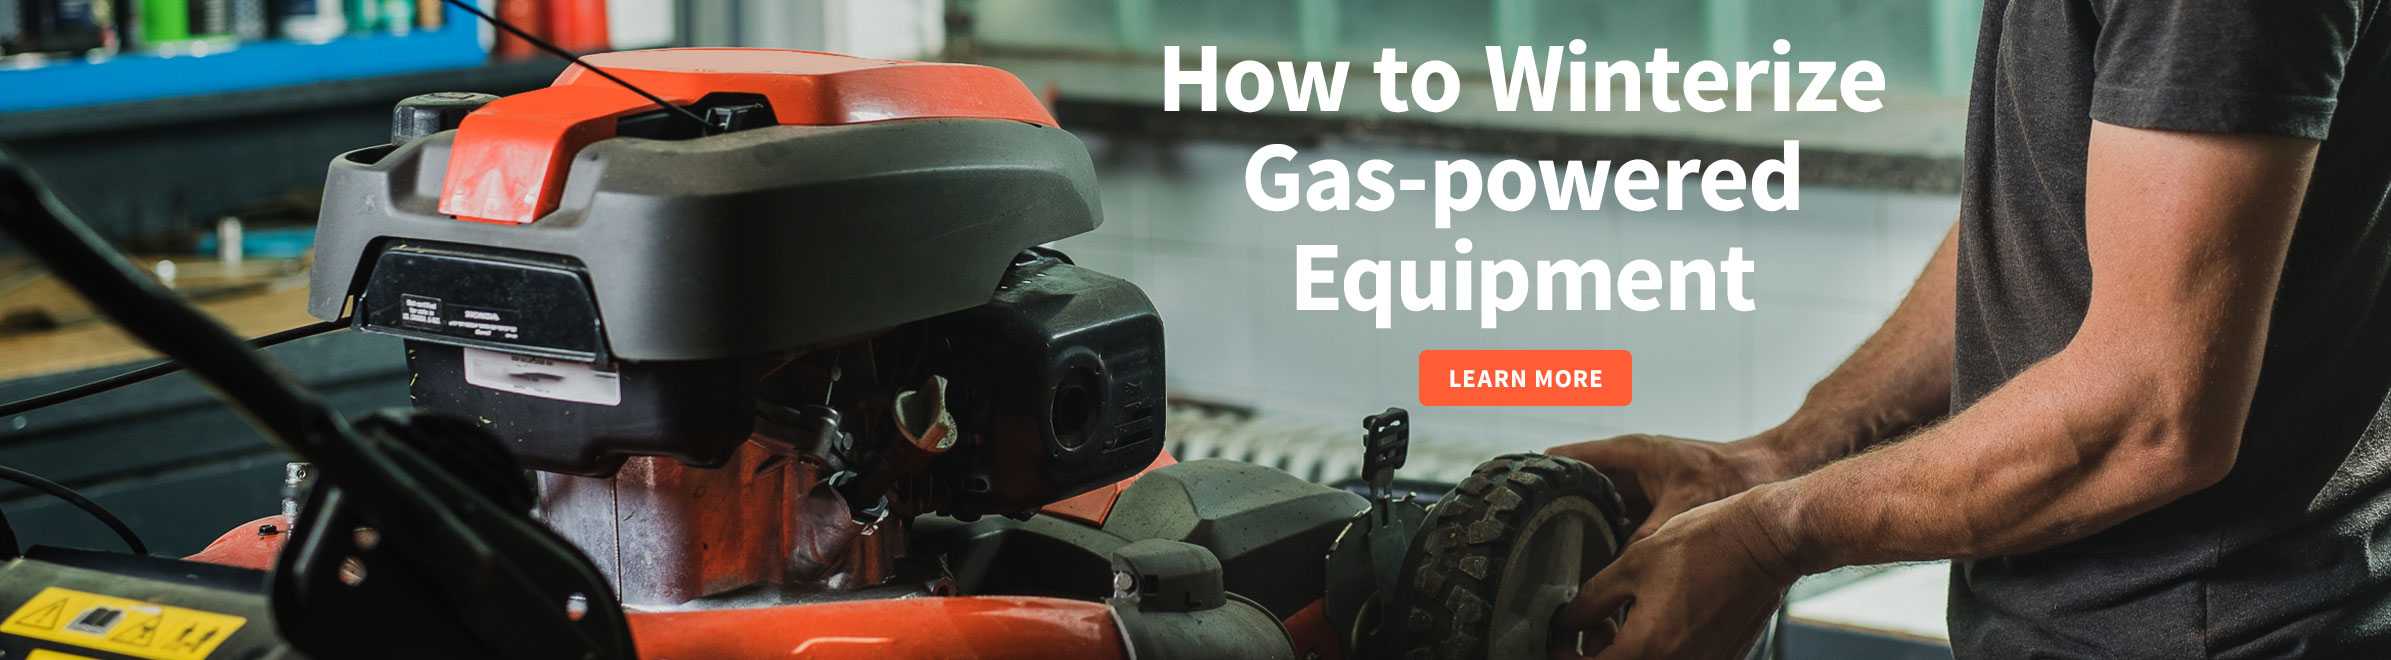 How to Winterize Gas-powered Equipment